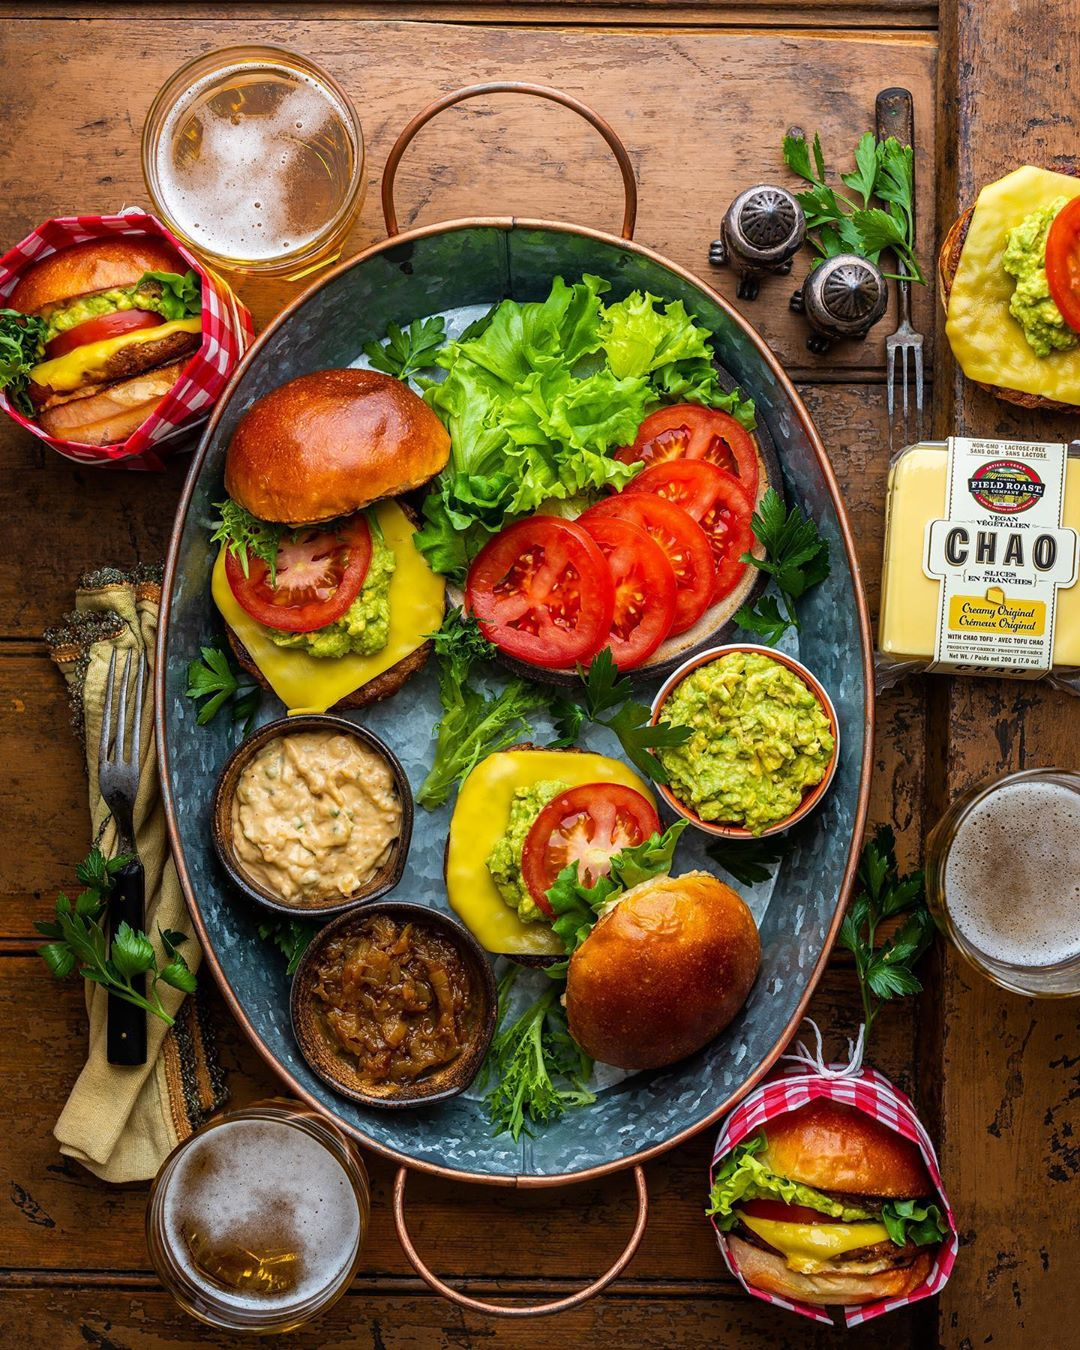 Southwest-Style Chao Cheeseburgers